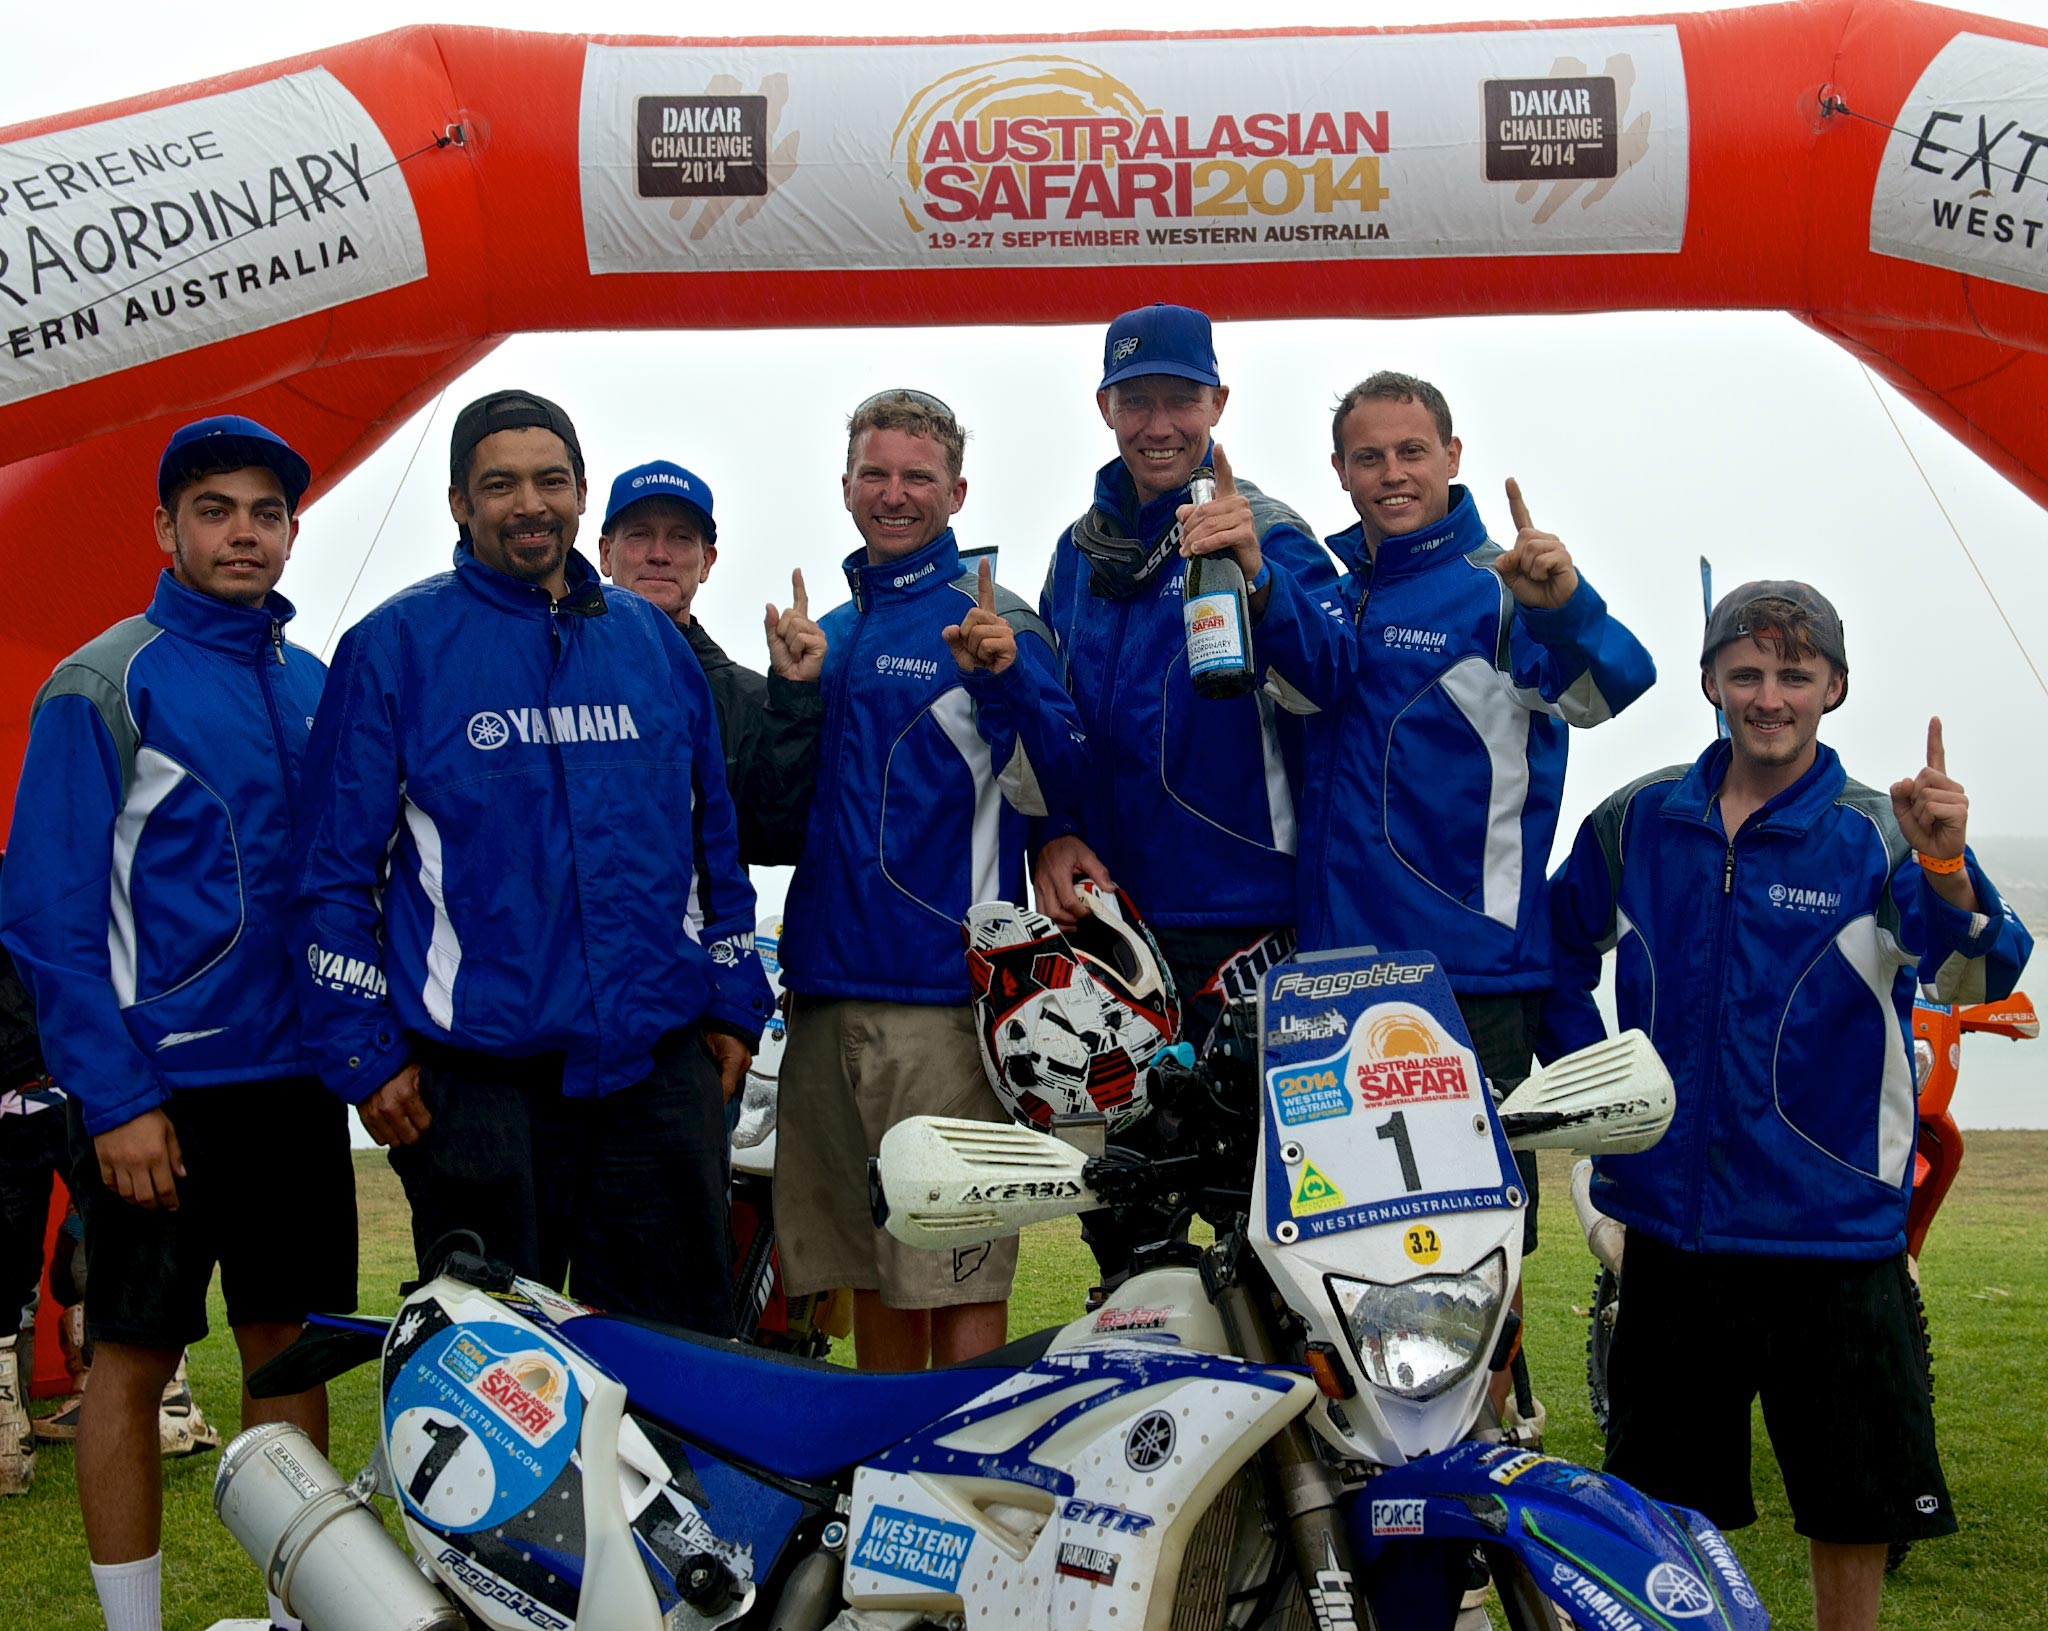 """""""Winning the Australian Safari is a great endorsement of the high performance and durability of the Yamaha WR450F,"""" states Yamaha Motorsport Manager, Ray Howard. """"Rodney and the Active8 team had a trouble free run to win this event and combined with last years' victory, it really does show just how tough the WR450F. """"Congratulations to Rodney and to AJ Roberts and the Active8 Yamaha team on this sensational result and it is something Yamaha Motor Australia is extremely proud of,"""" Howard ends."""